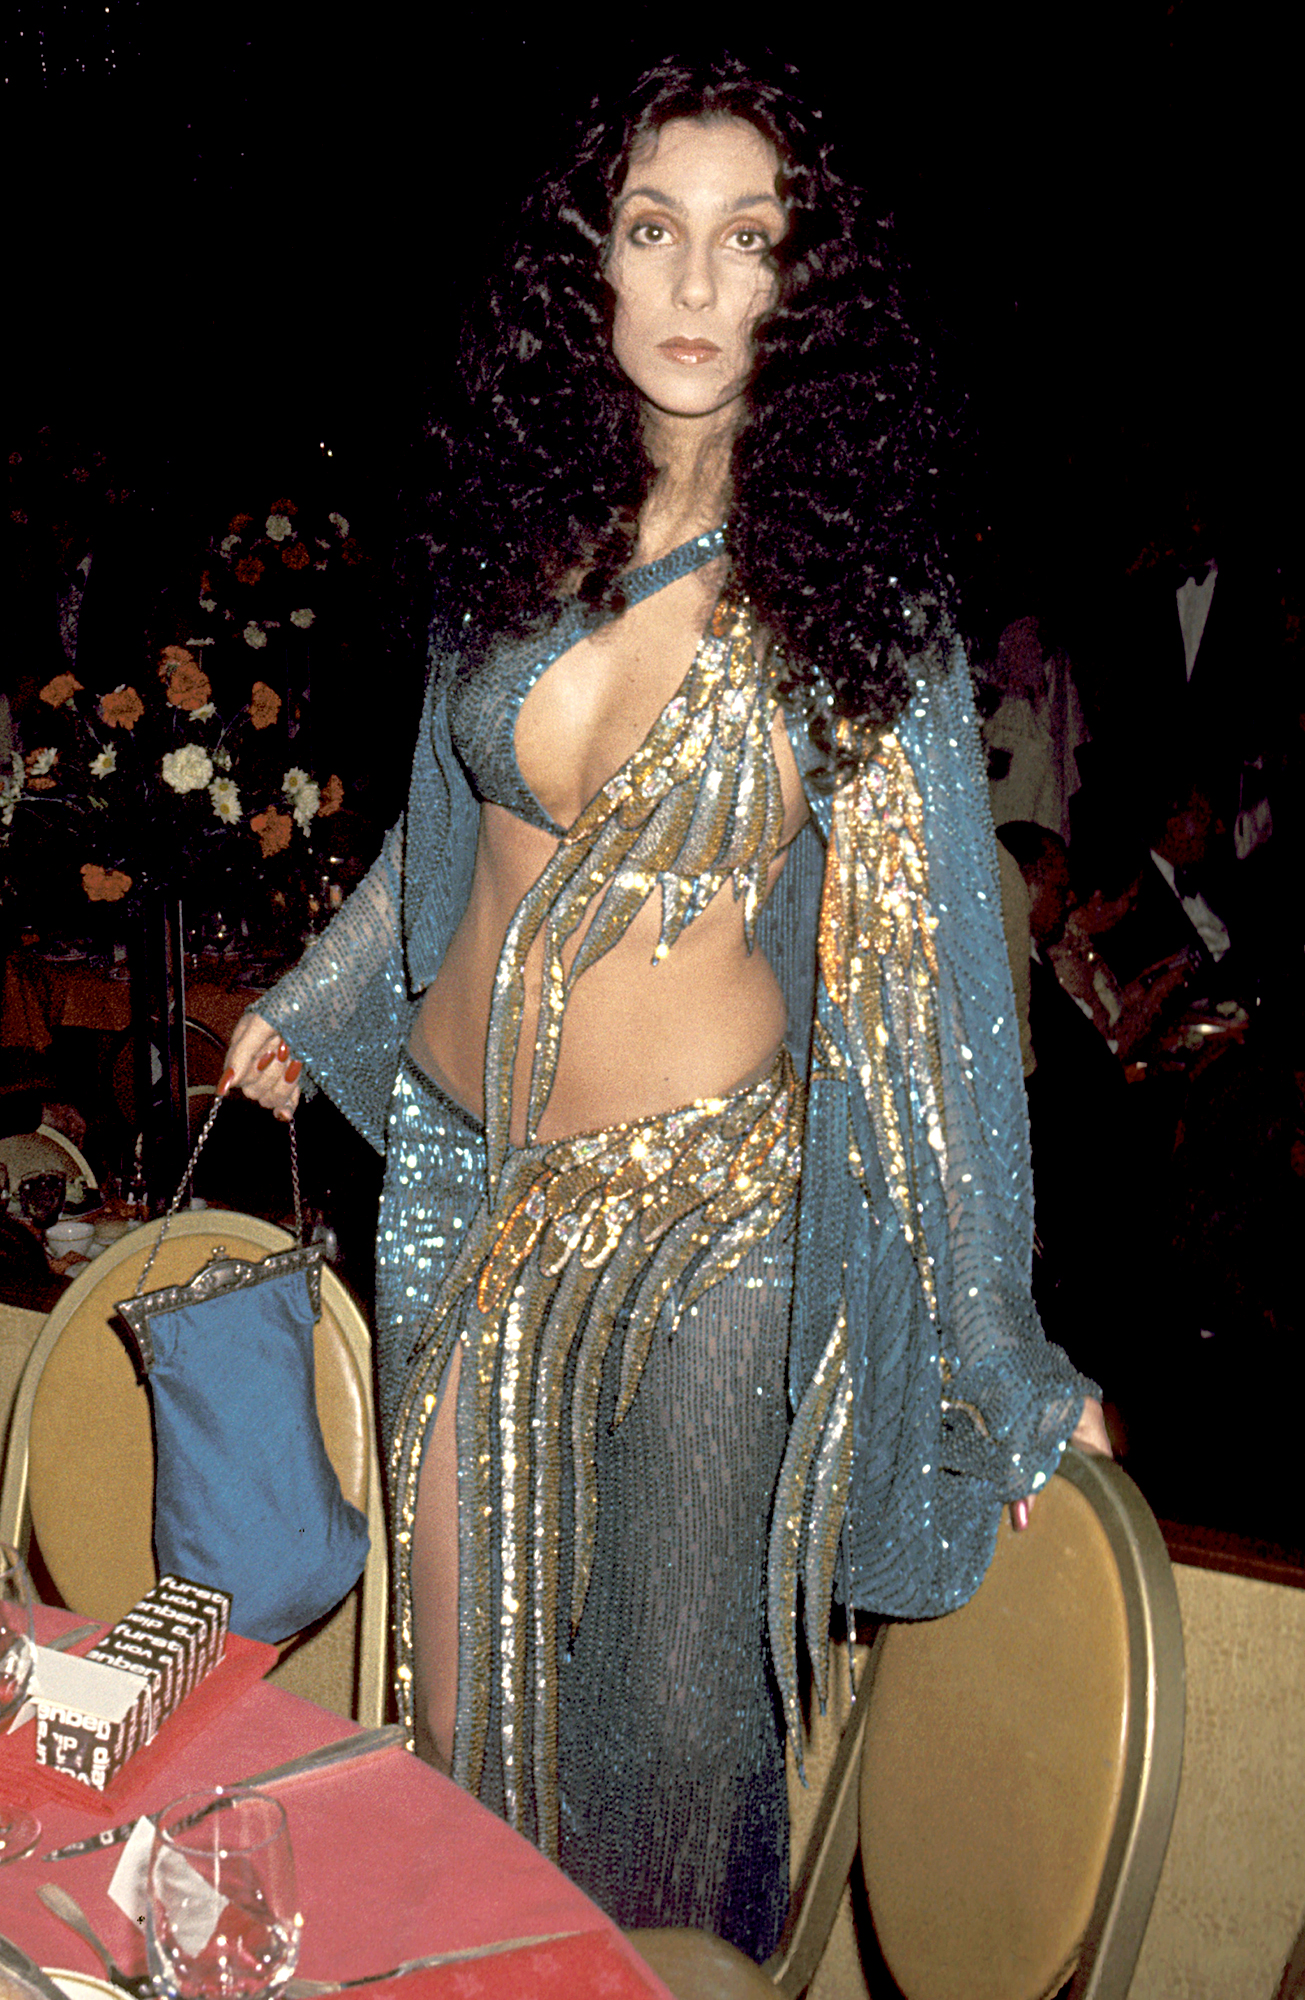 1977-Cher - At the Joseph Andrews L.A. premiere, the Grammy award-winning songstress wore a skirt and bra ensemble that was covered in blue and gold sequins.